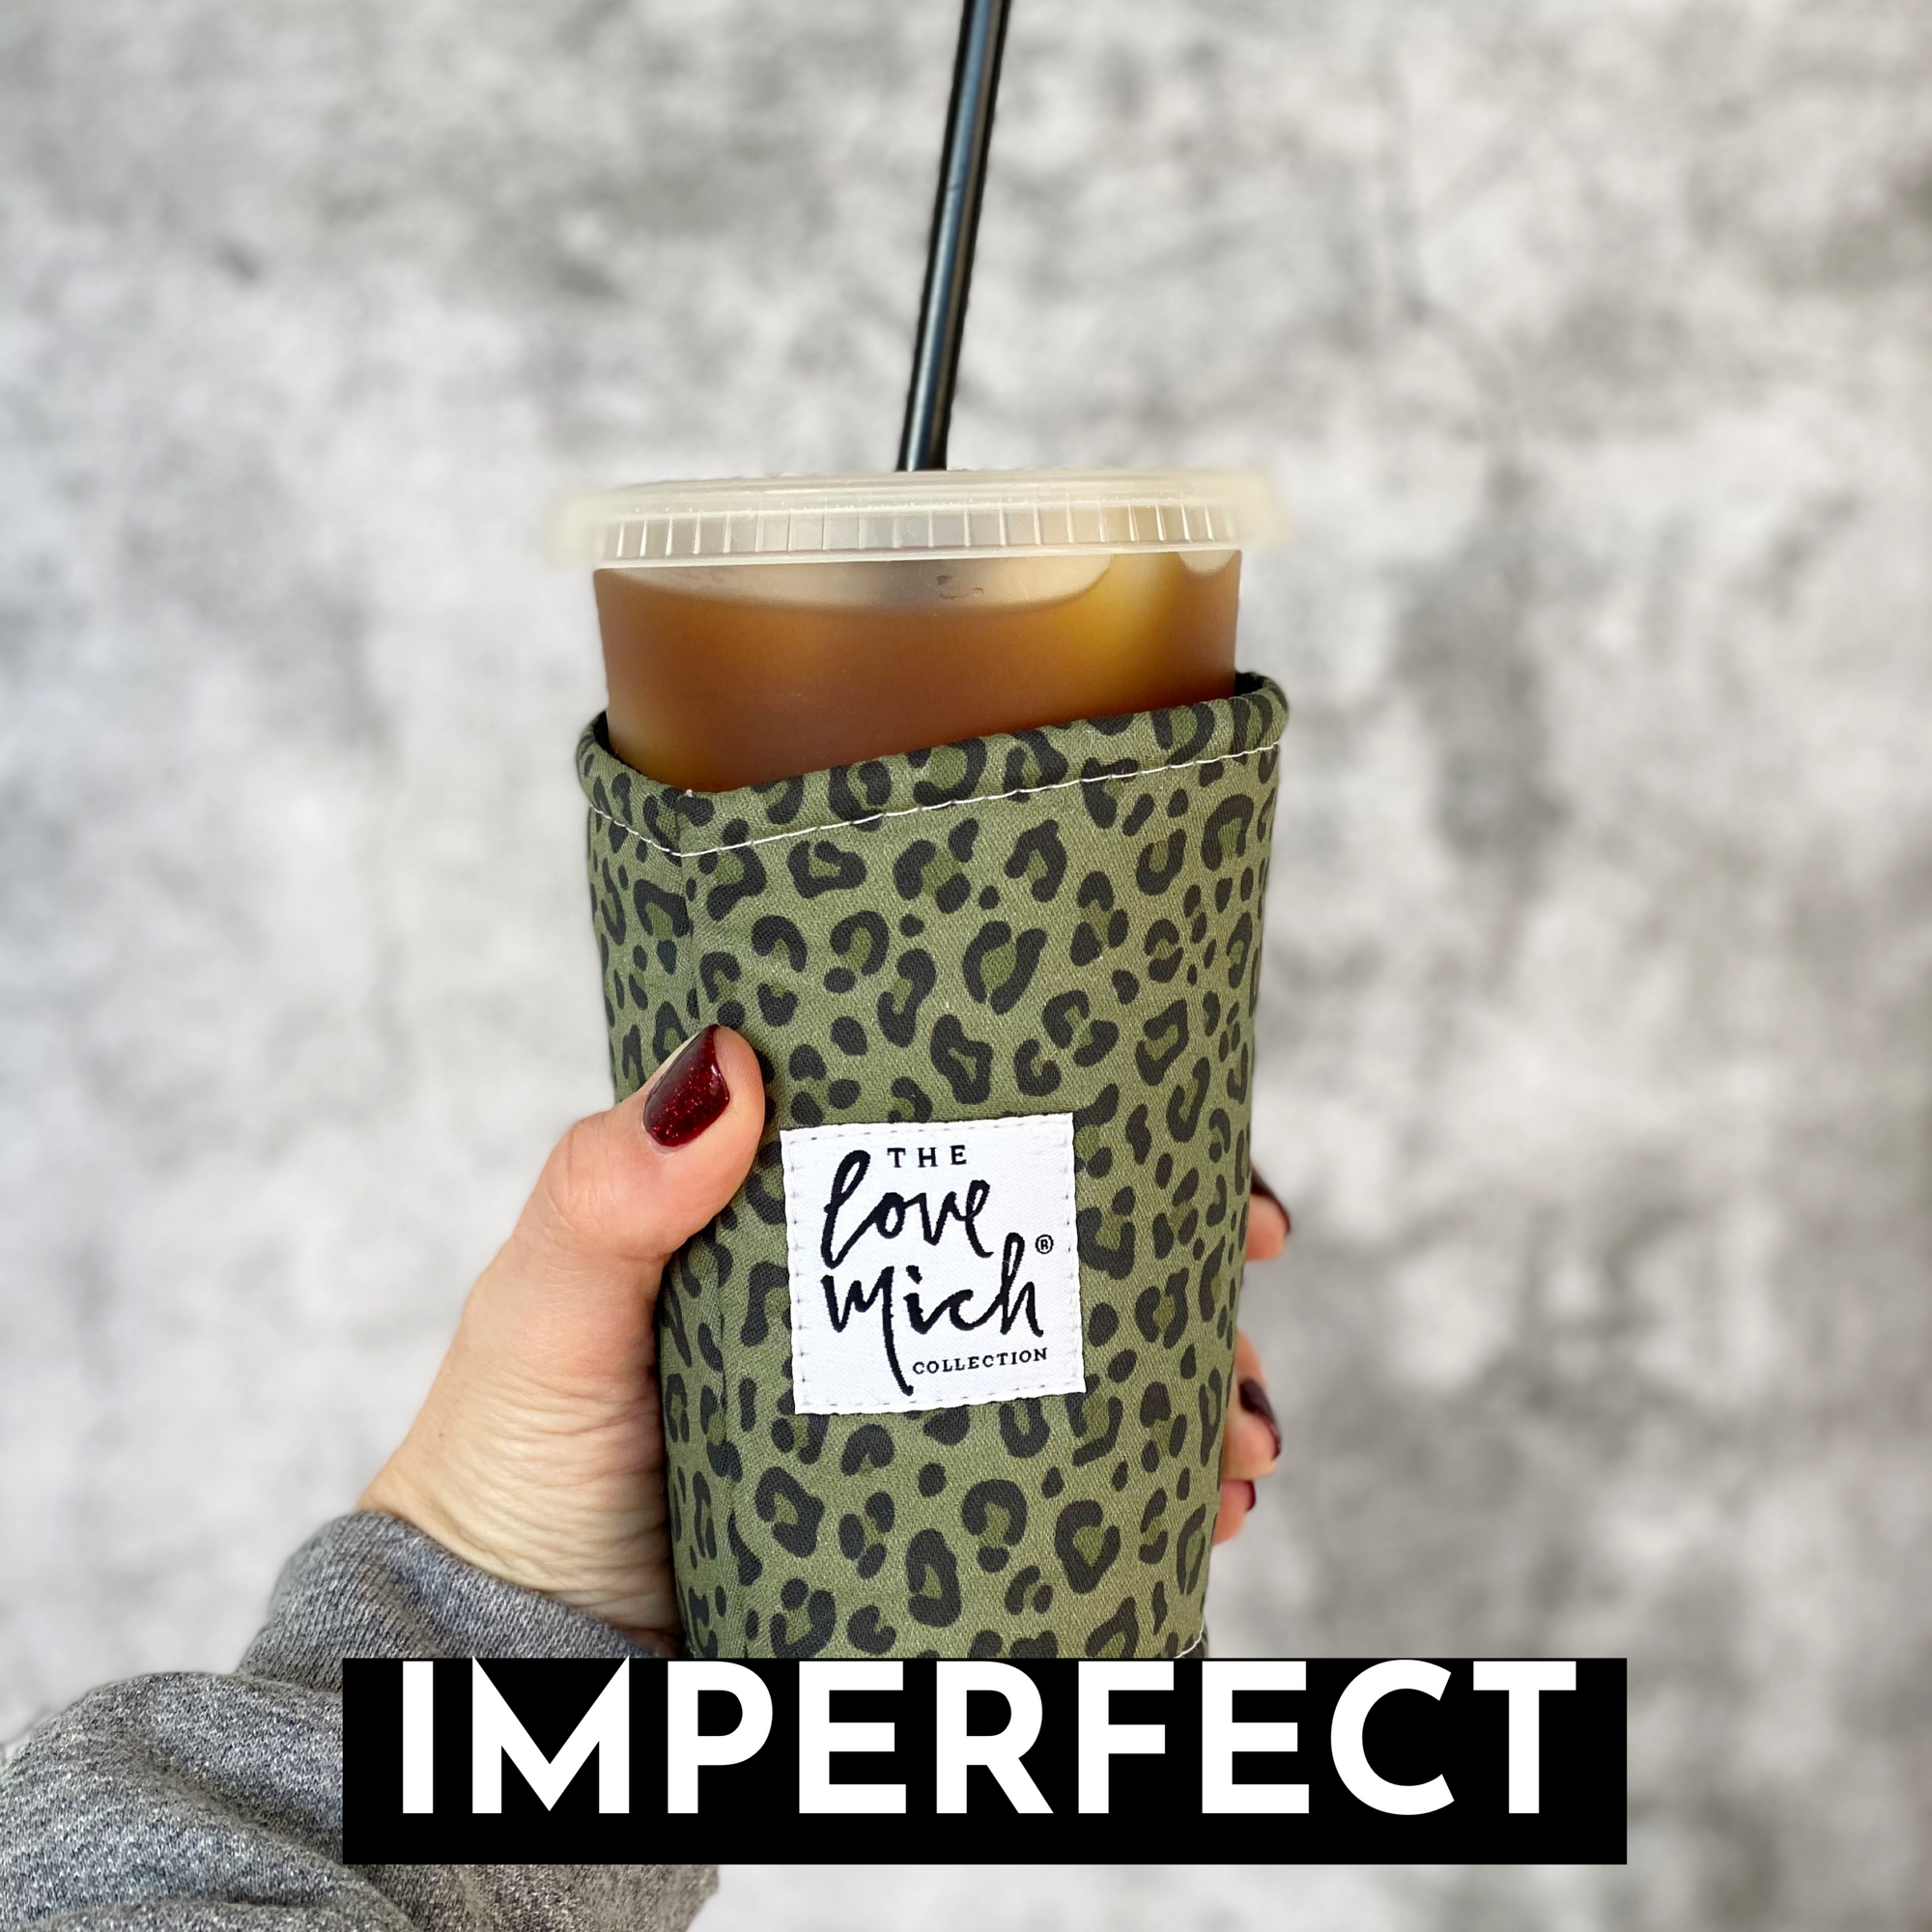 IMPERFECT - As seen on TV - Camo Leopard - Coffee Cozy